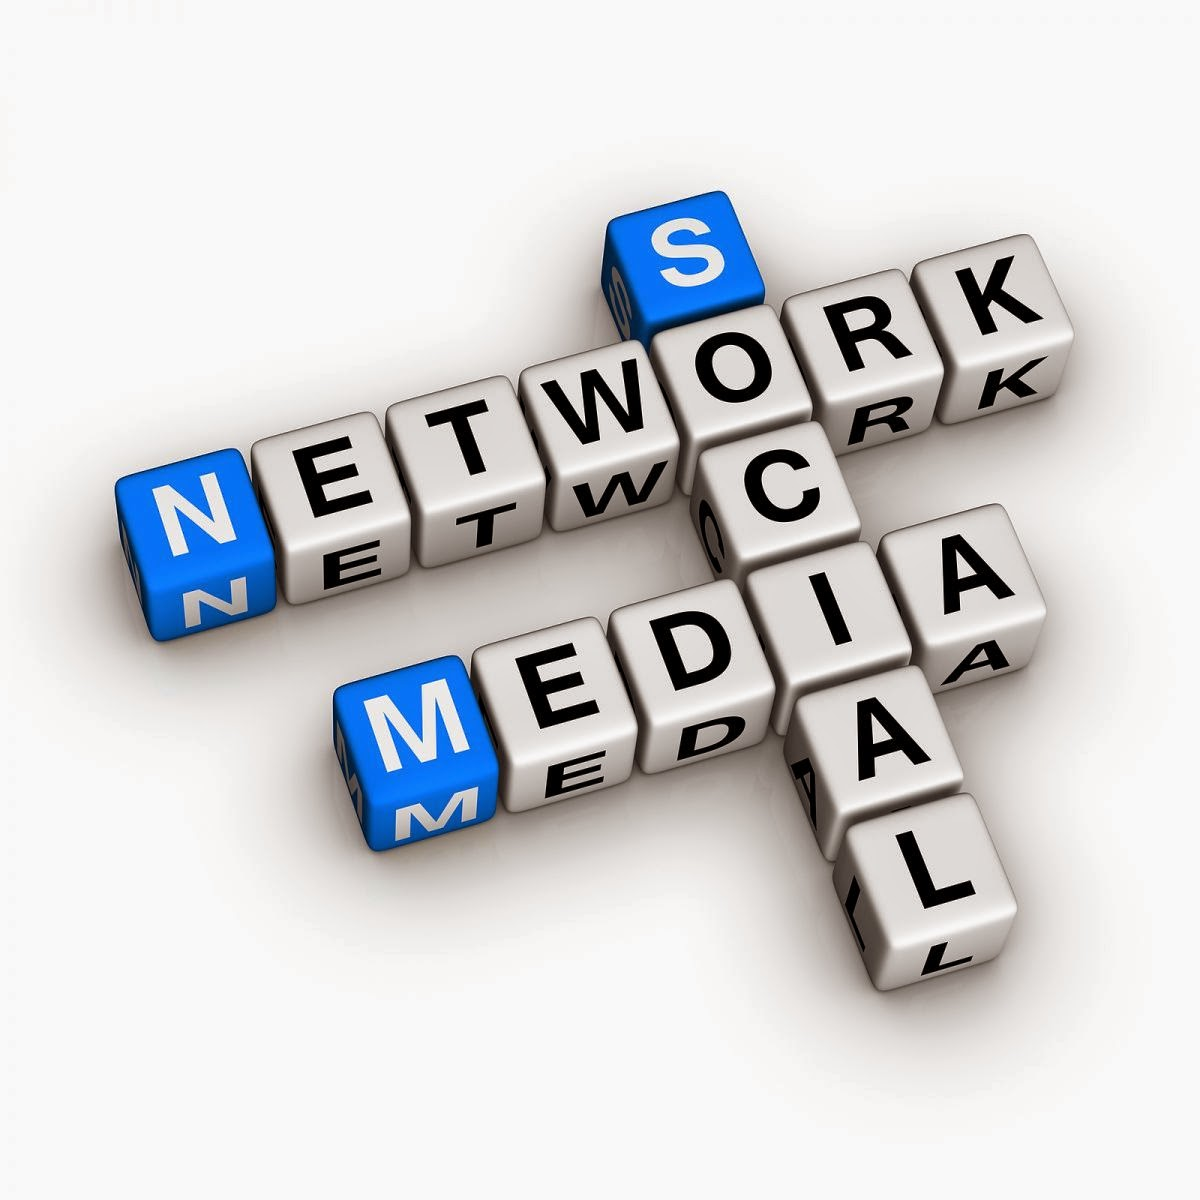 Social Networking - Will It Advice Your Business?